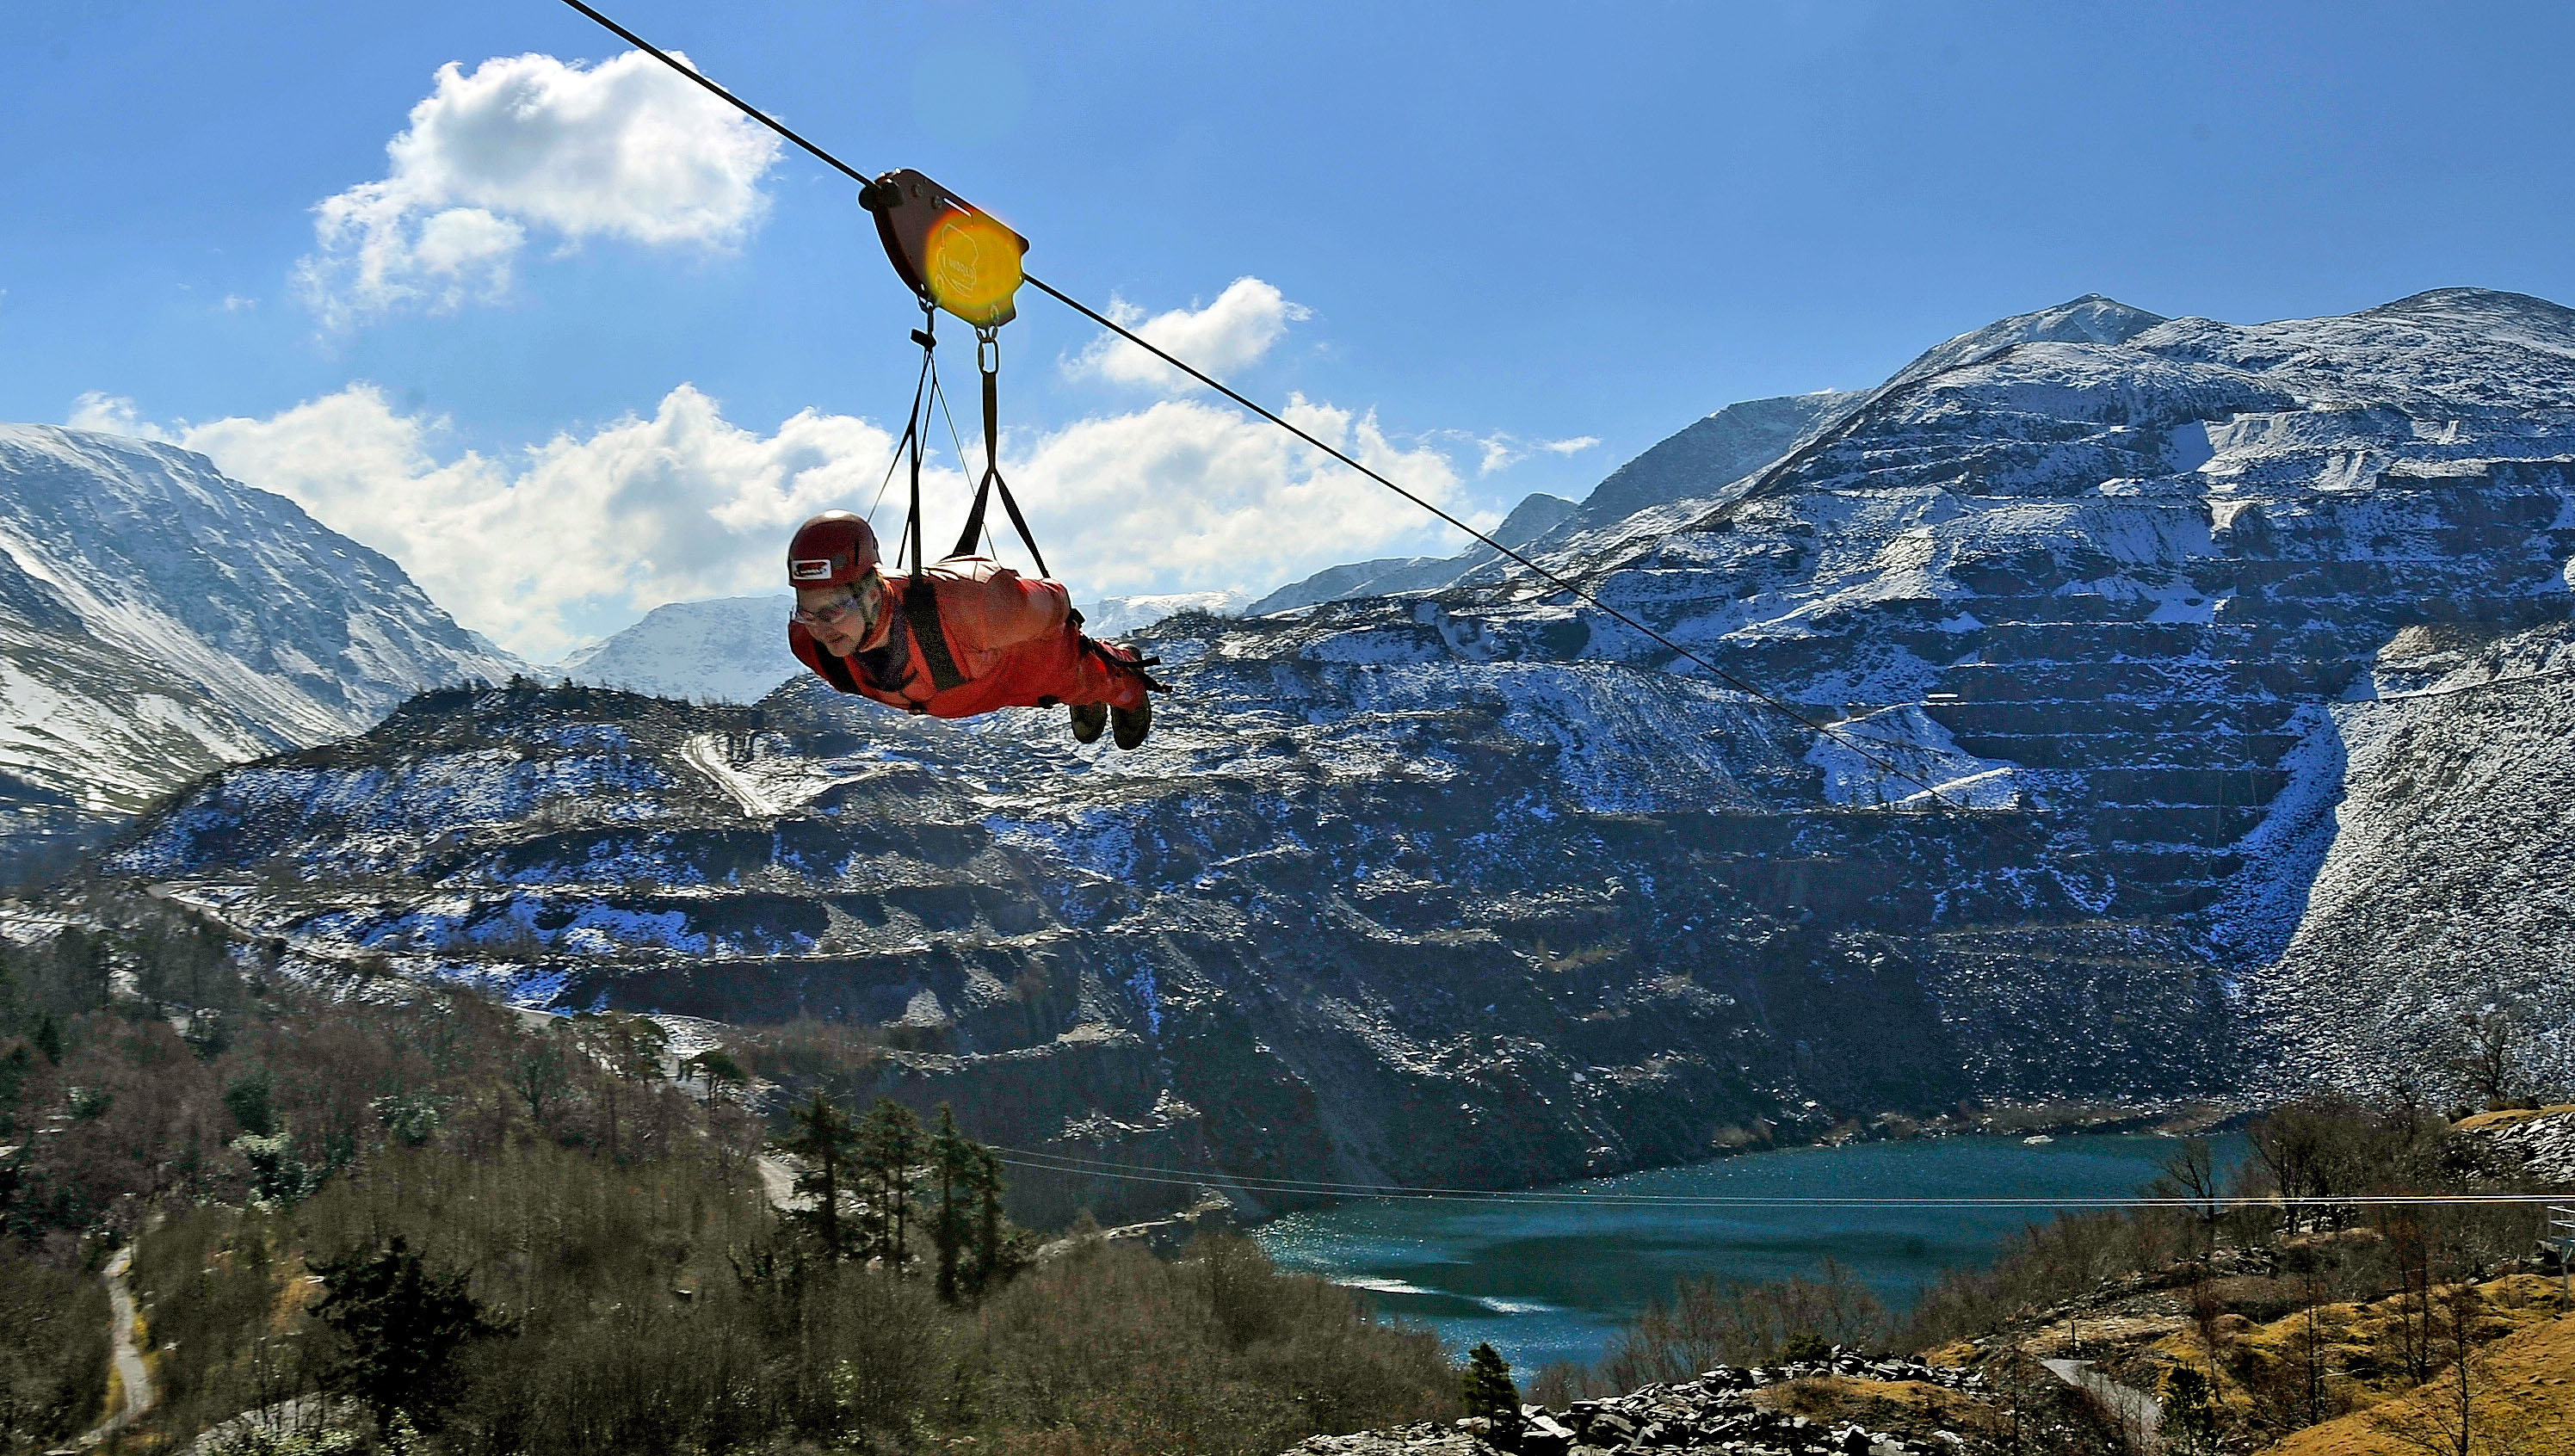 boy with orange suit zipworld - zipline